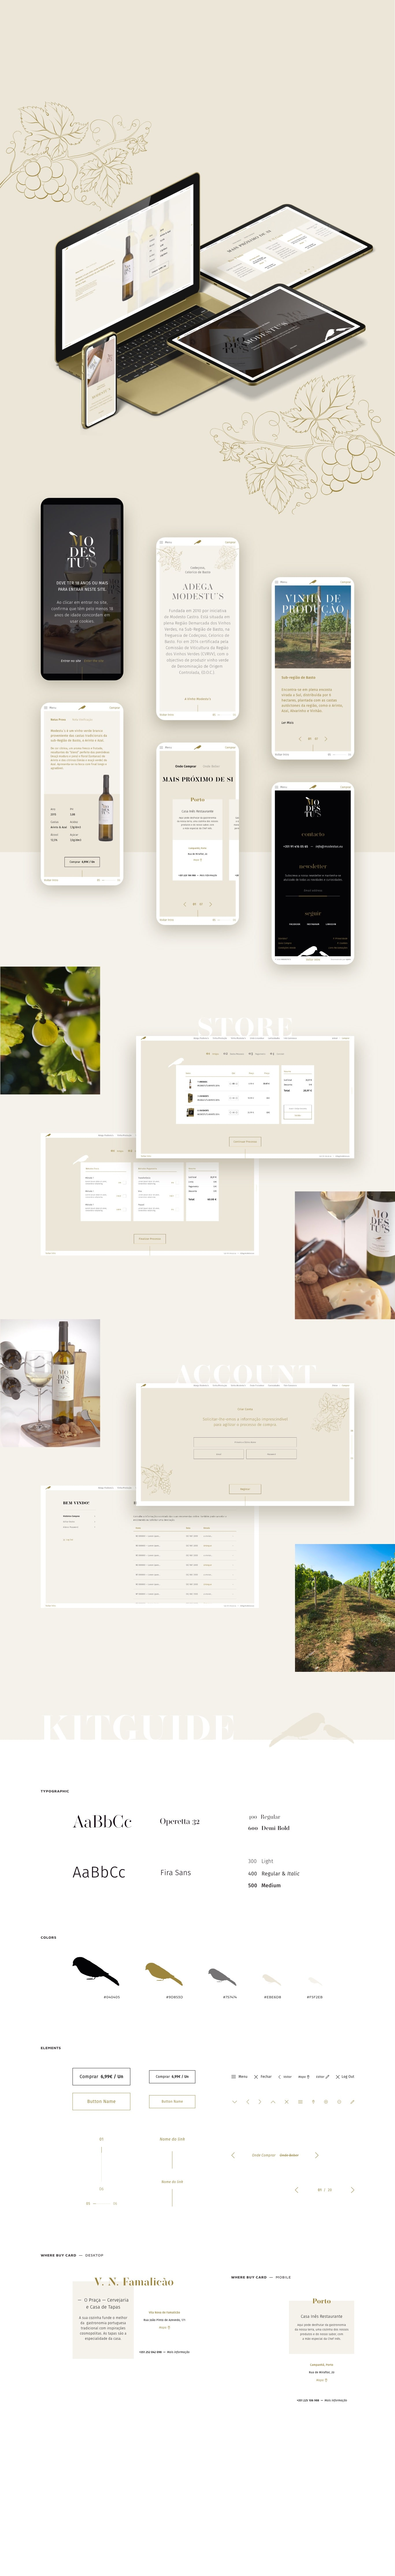 layout developed for online store